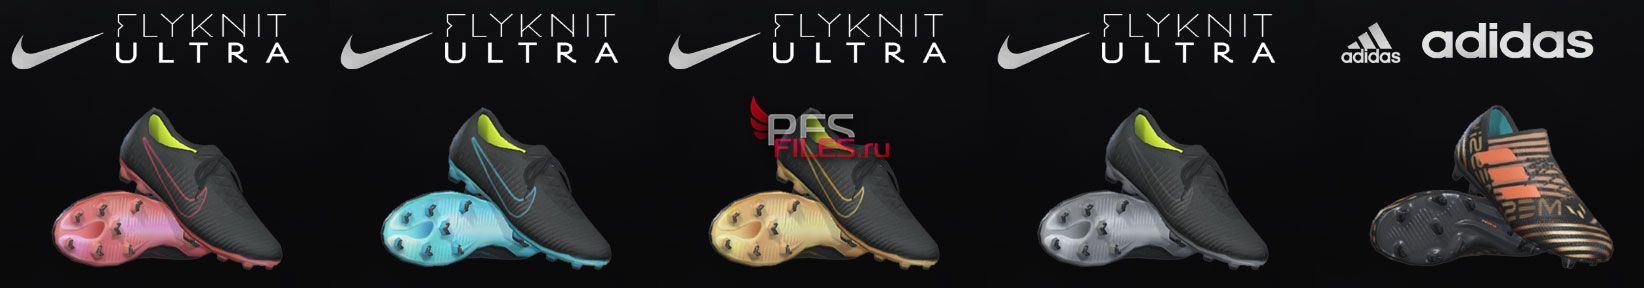 PES 2018 Nike Flyknit Ultra Pack + Messi